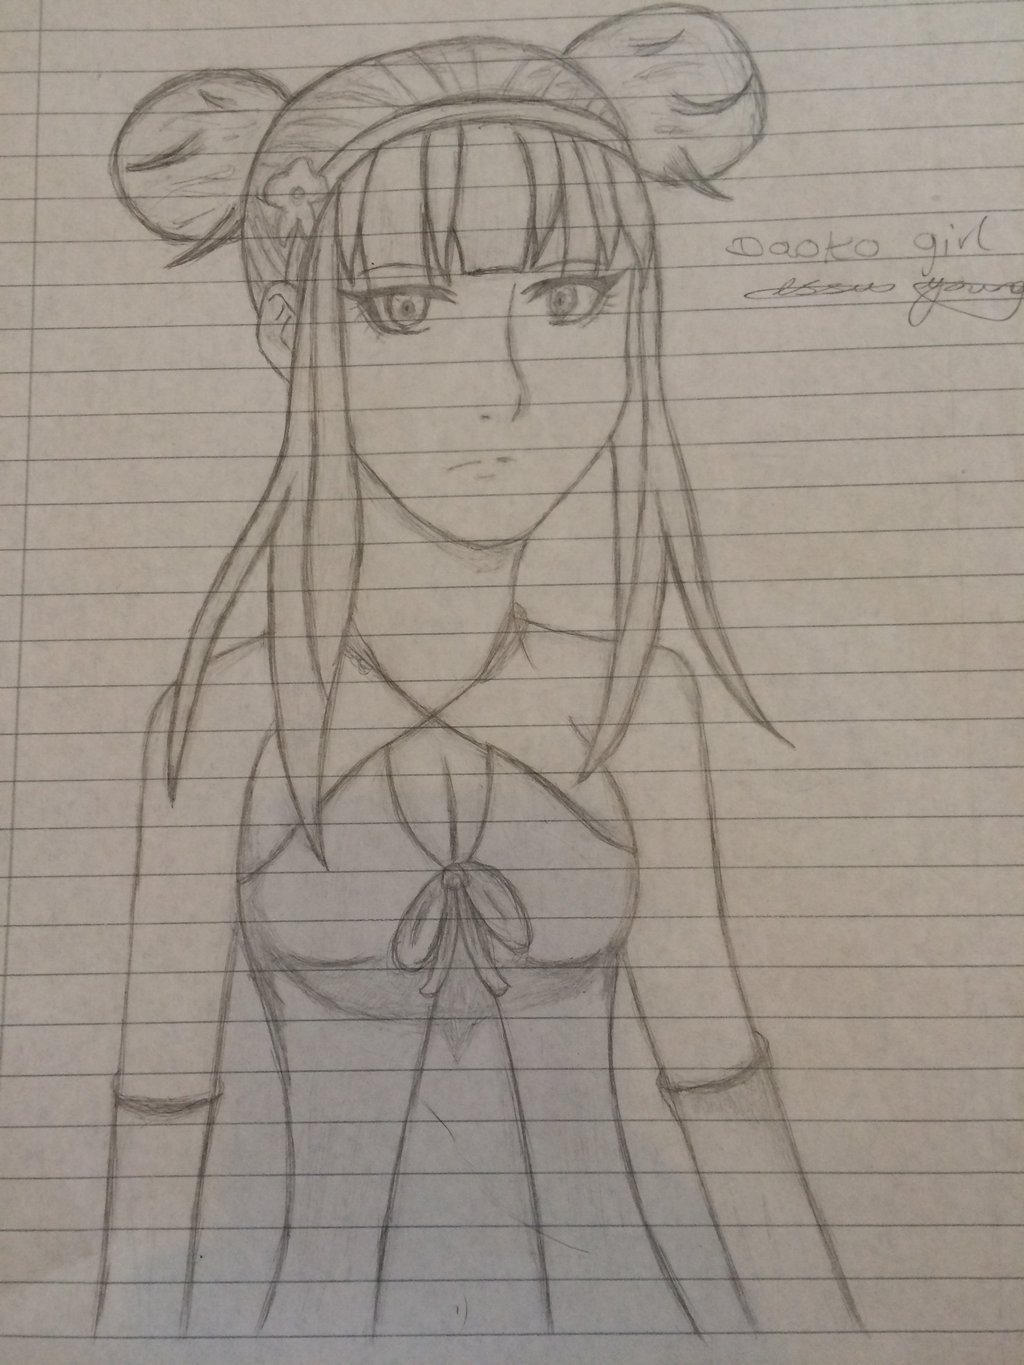 Daoko girl drawing by epicbubble7